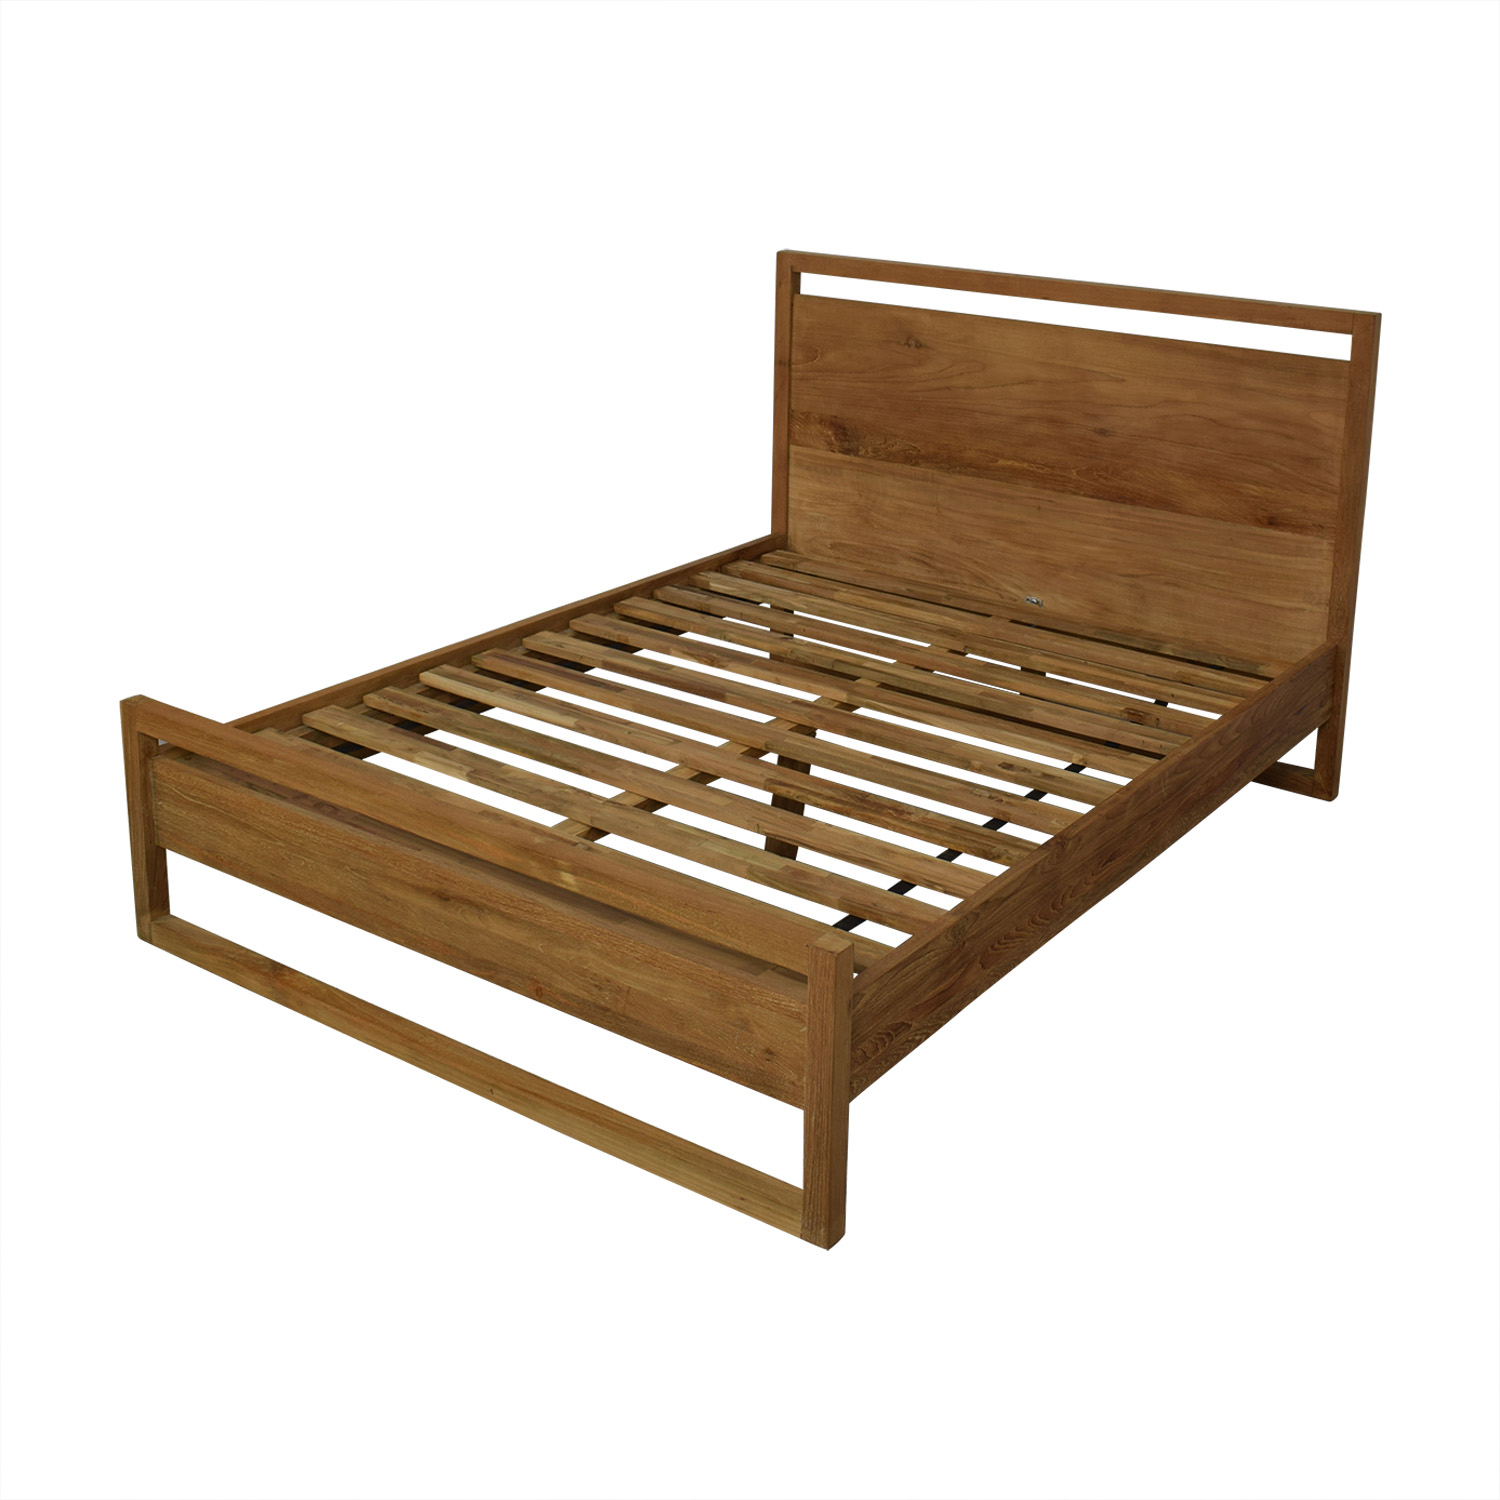 shop Crate & Barrel Linea II Queen Bed Frame Crate & Barrel